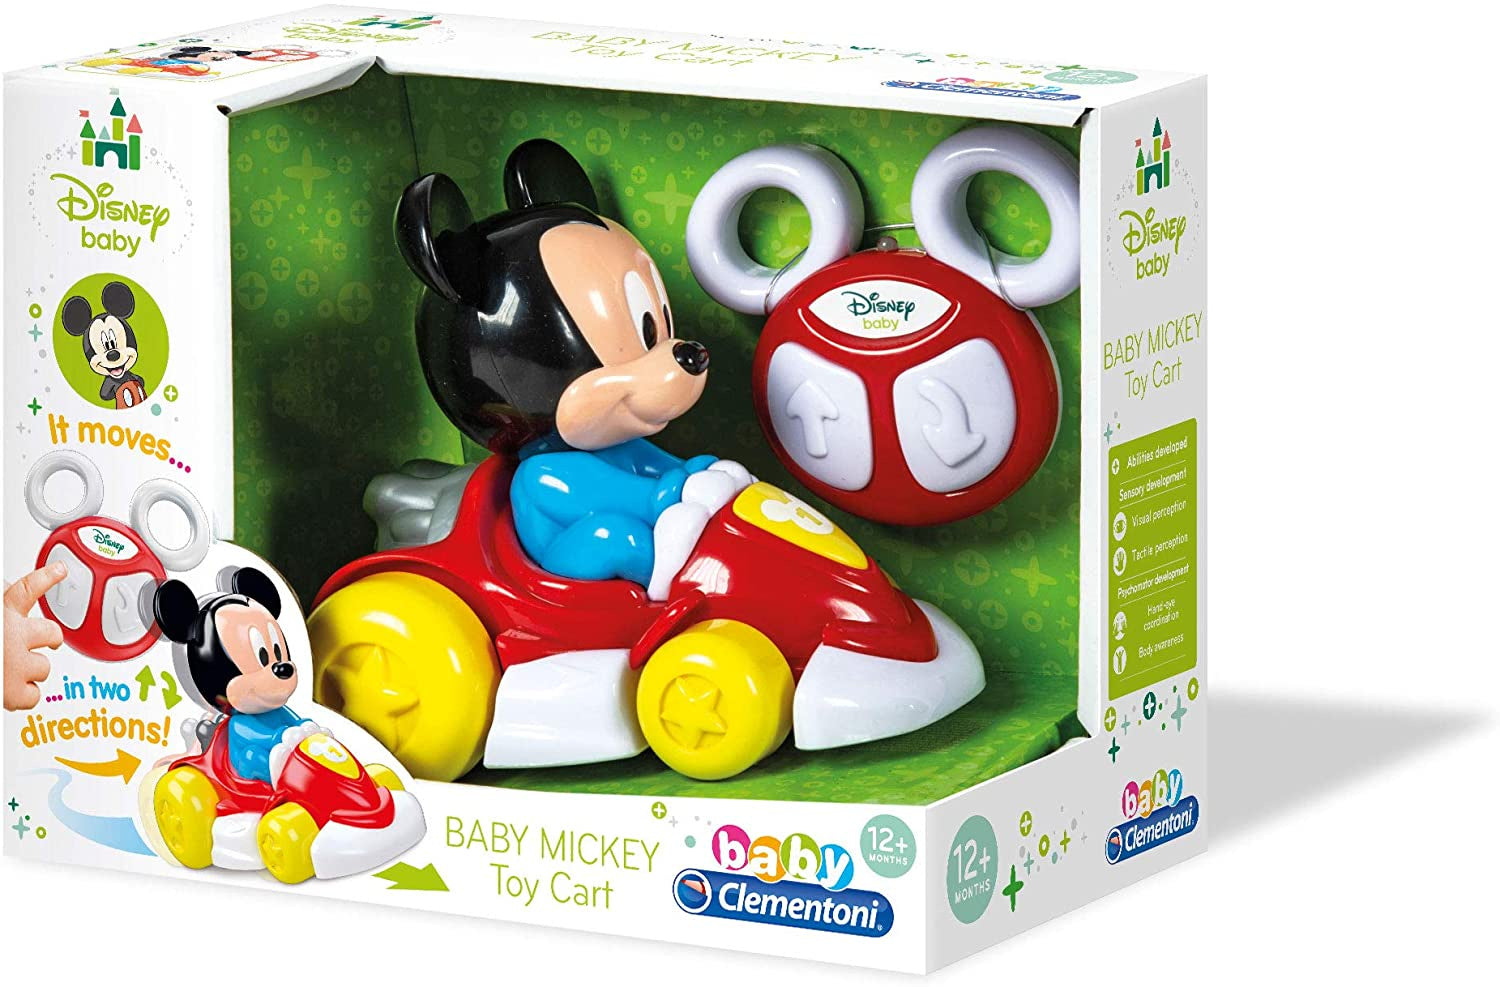 Mickey Mouse Baby Remote Control Baby Mickey Toy Cart